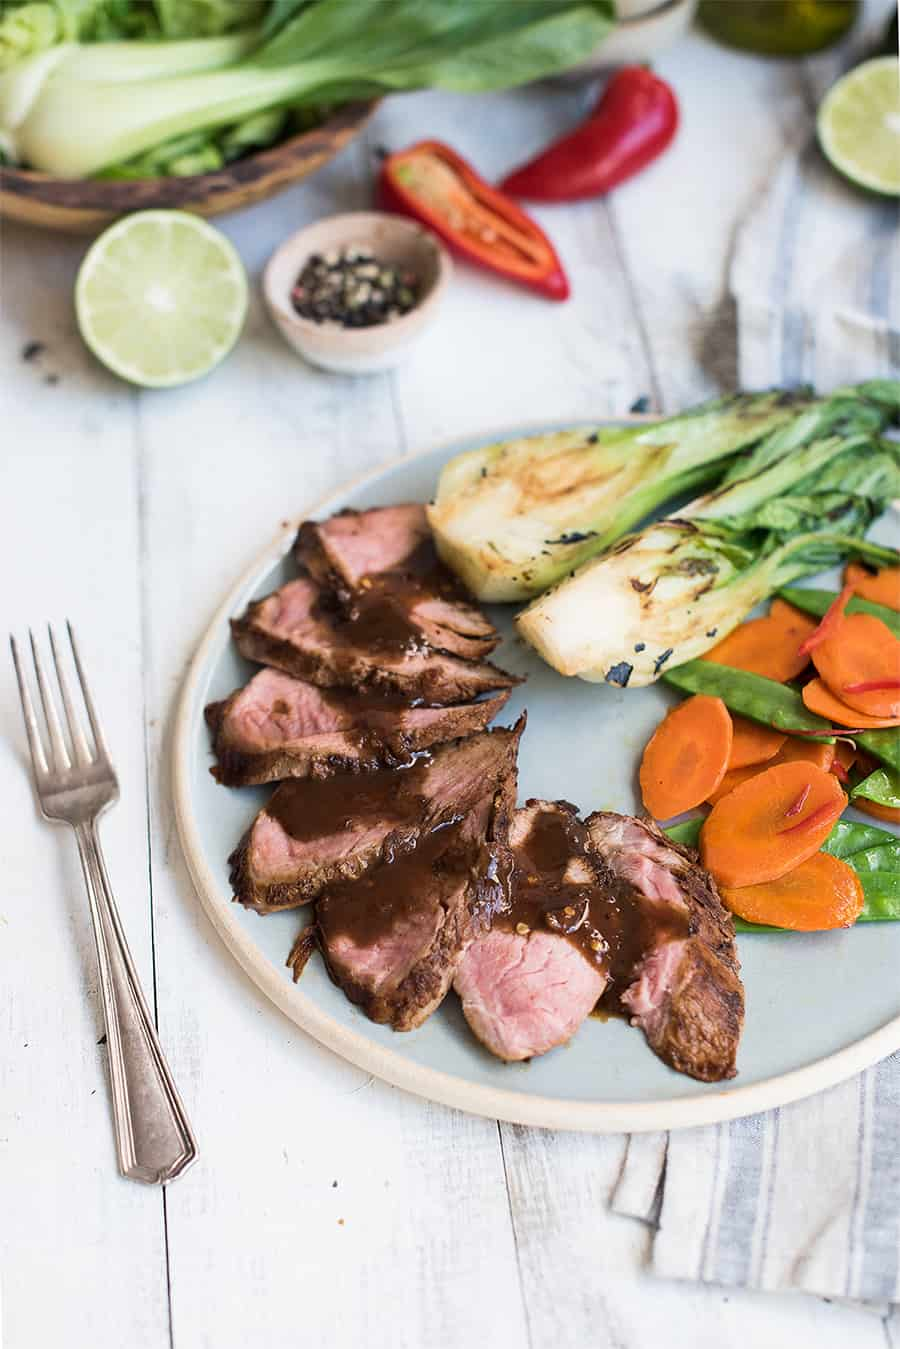 five spice sticky pork tenderloin, sliced on plate with veggies